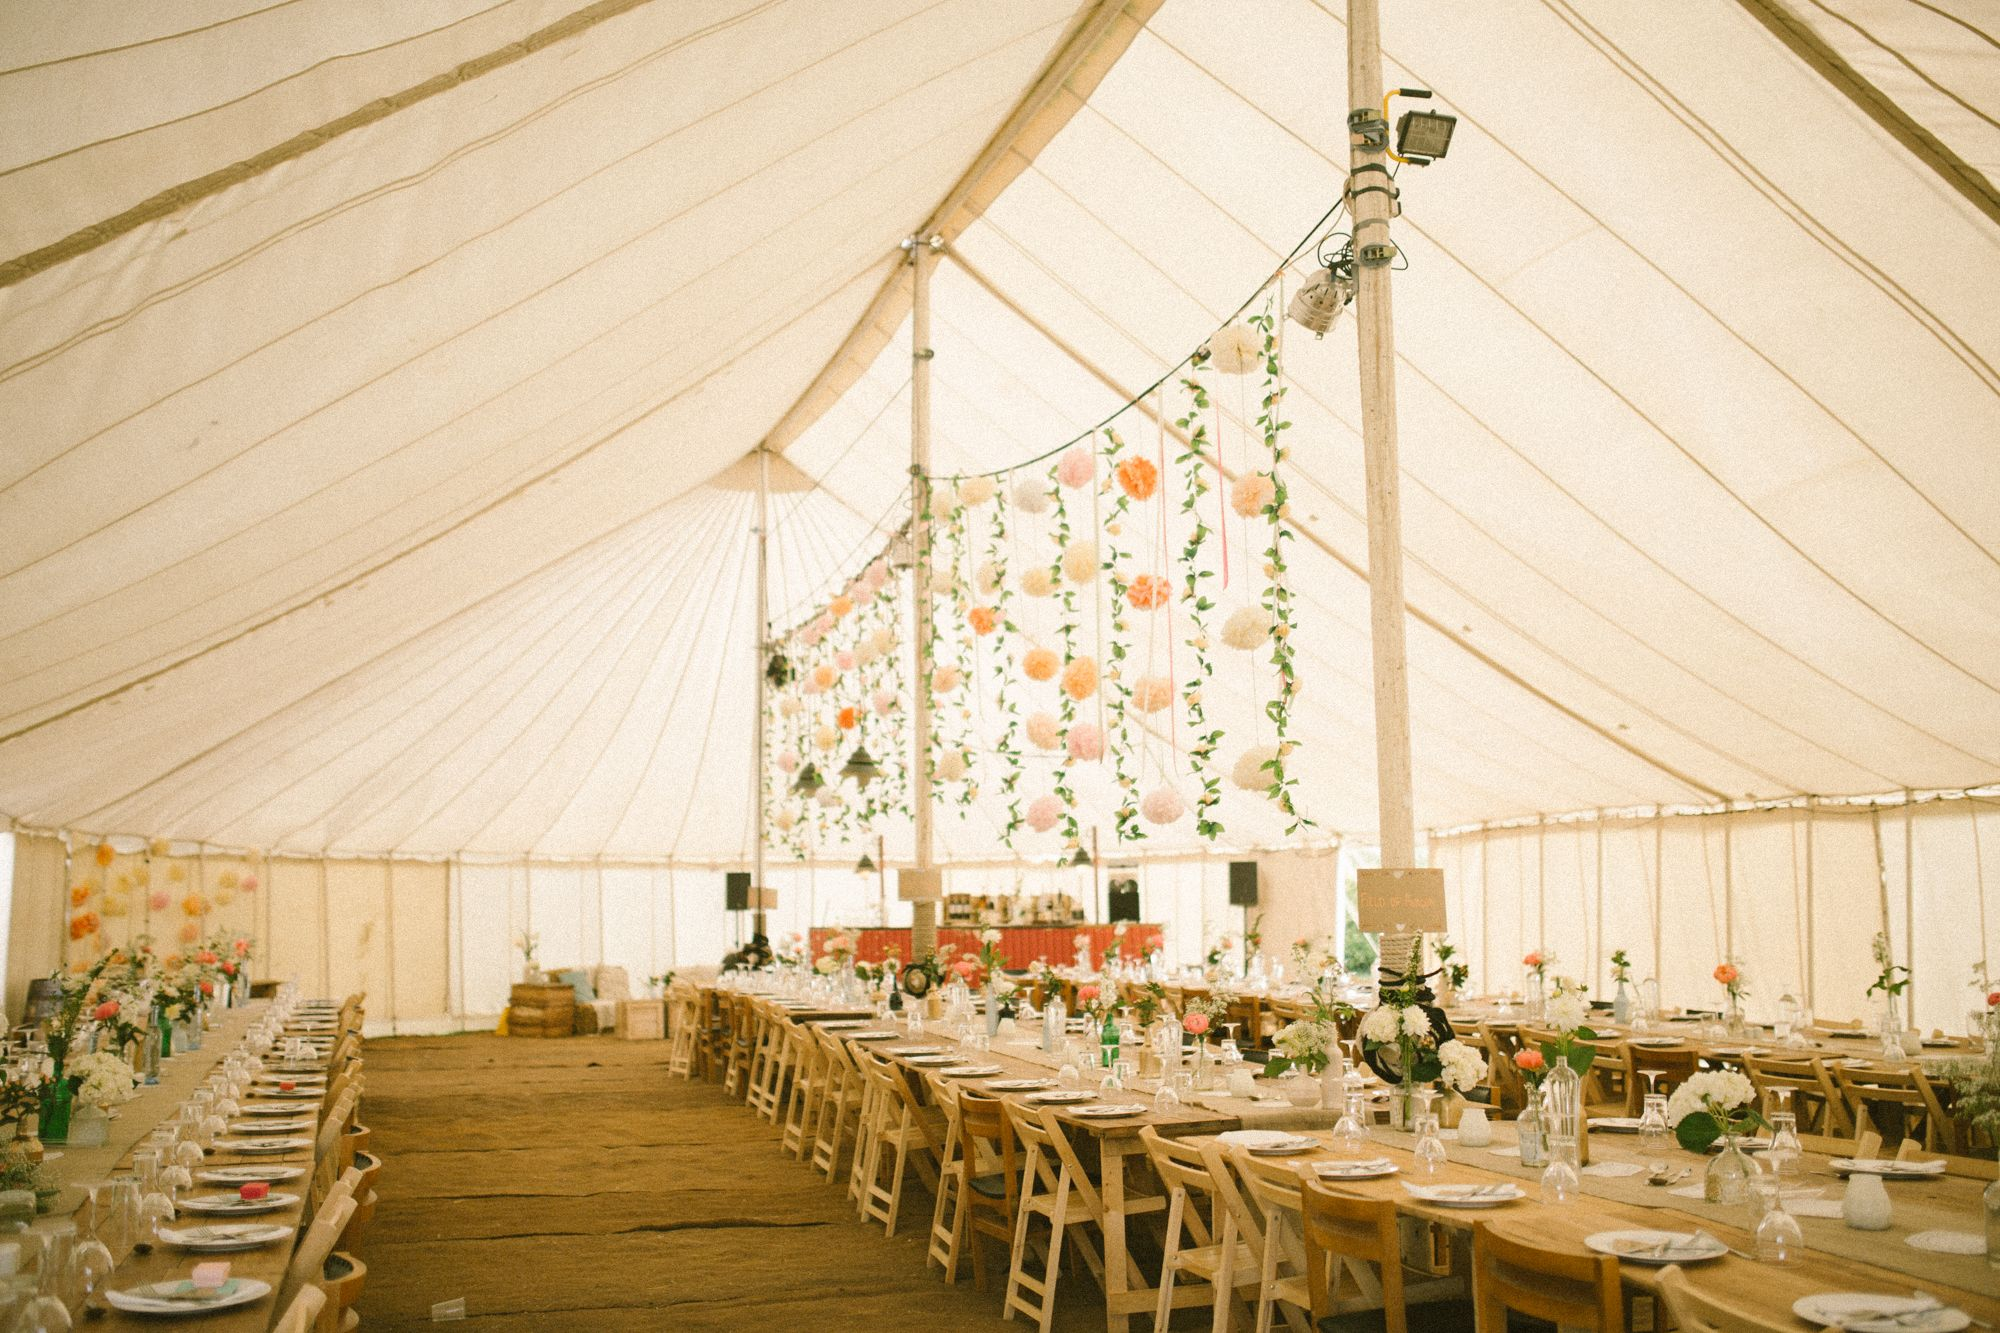 We had beautiful old fashioned tents with coco matting floor. Giant pom poms courtesy of : homemade wedding tent - memphite.com